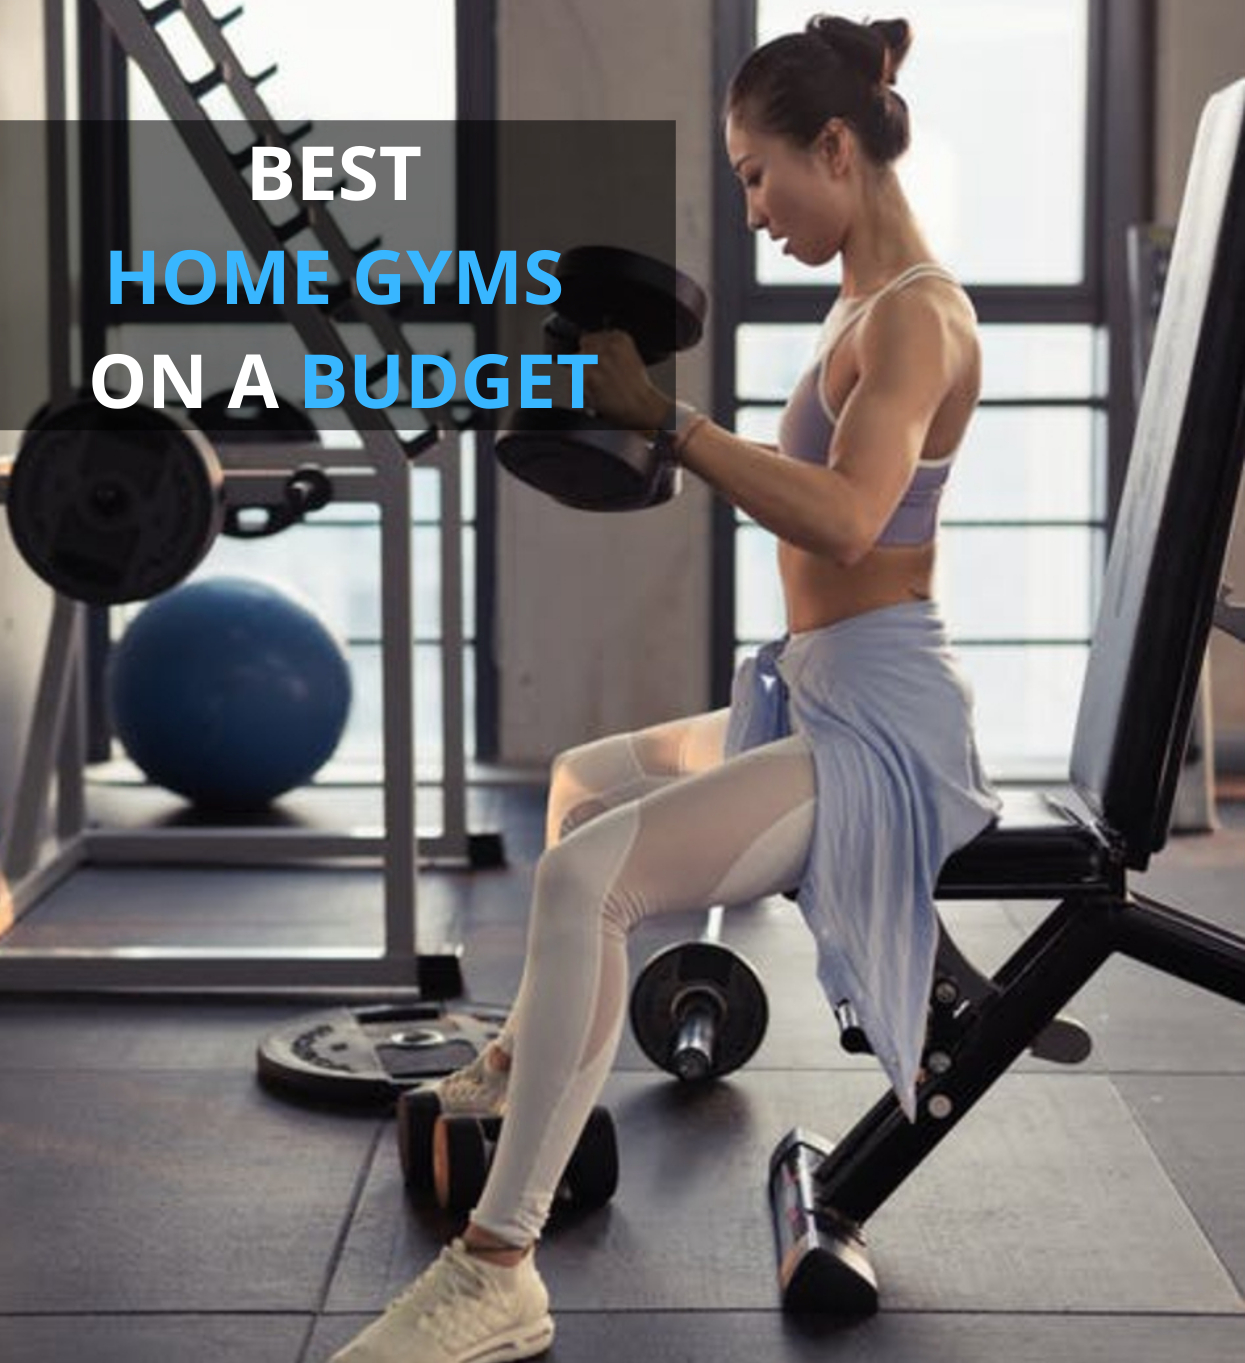 Best Home Gyms On A Budget